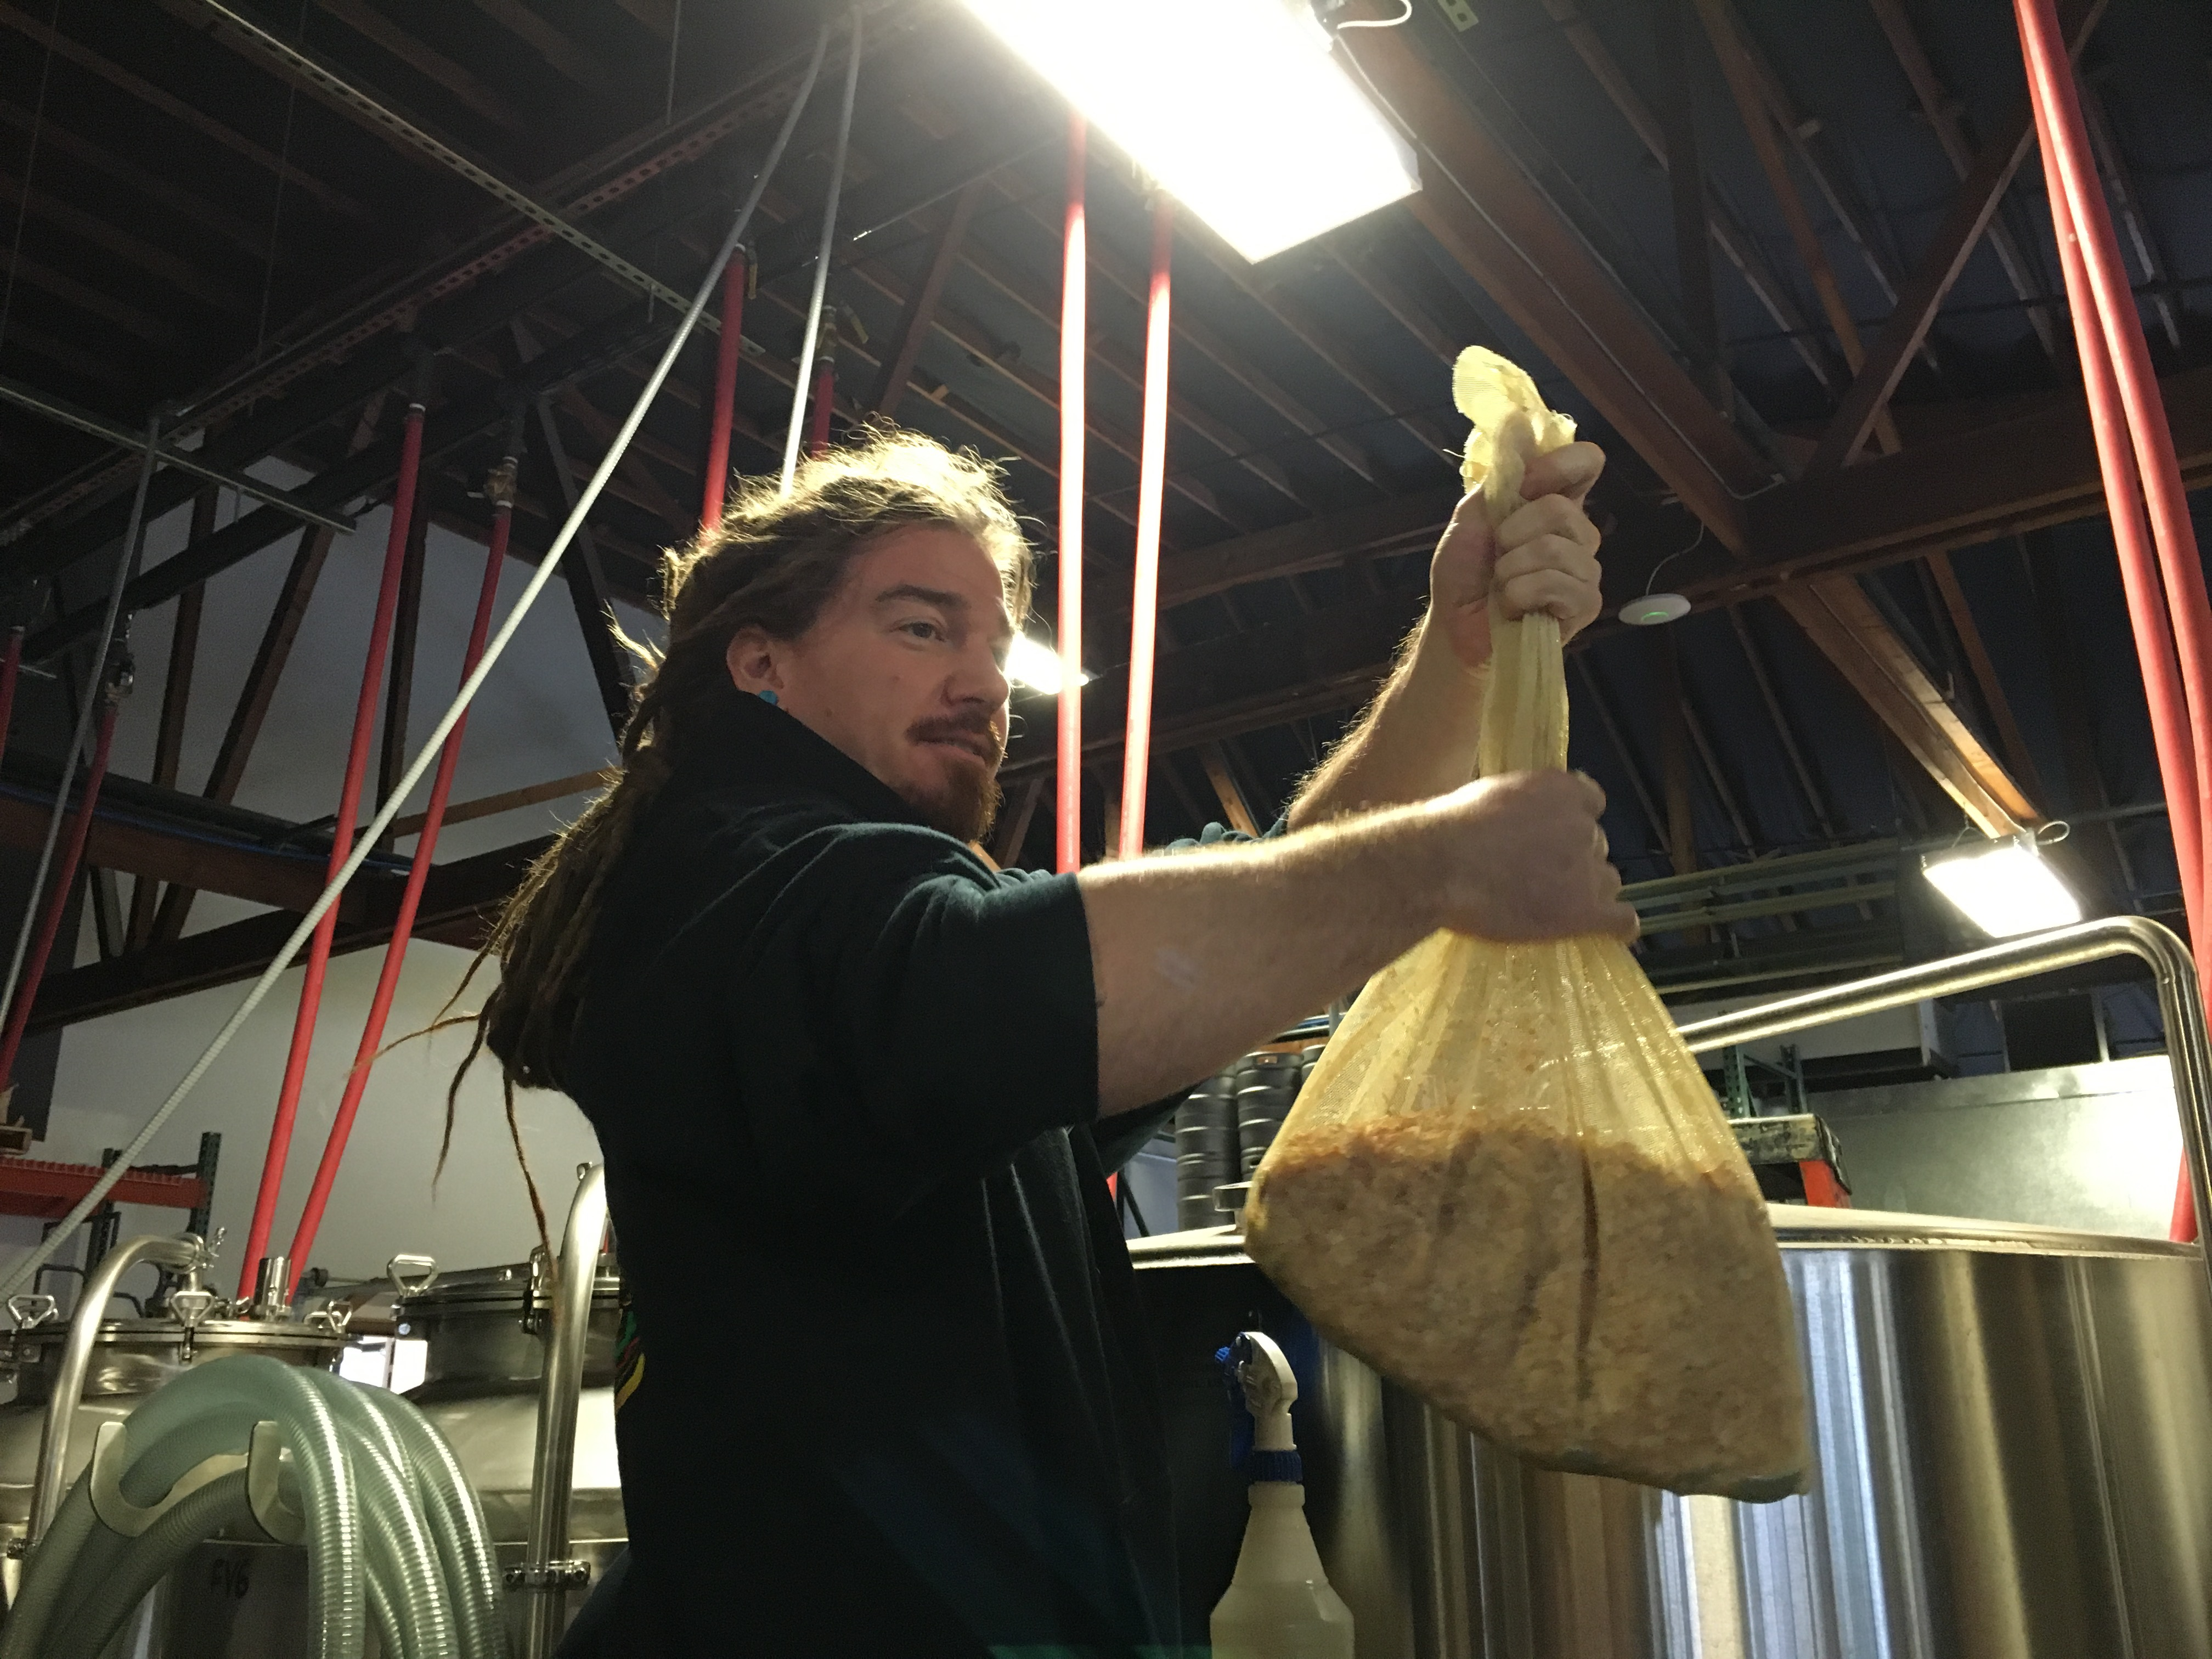 Pono Brewing's Erick Russ getting ready to place a bag of toasted coconut to finish Toasted Coconut Cream Ale